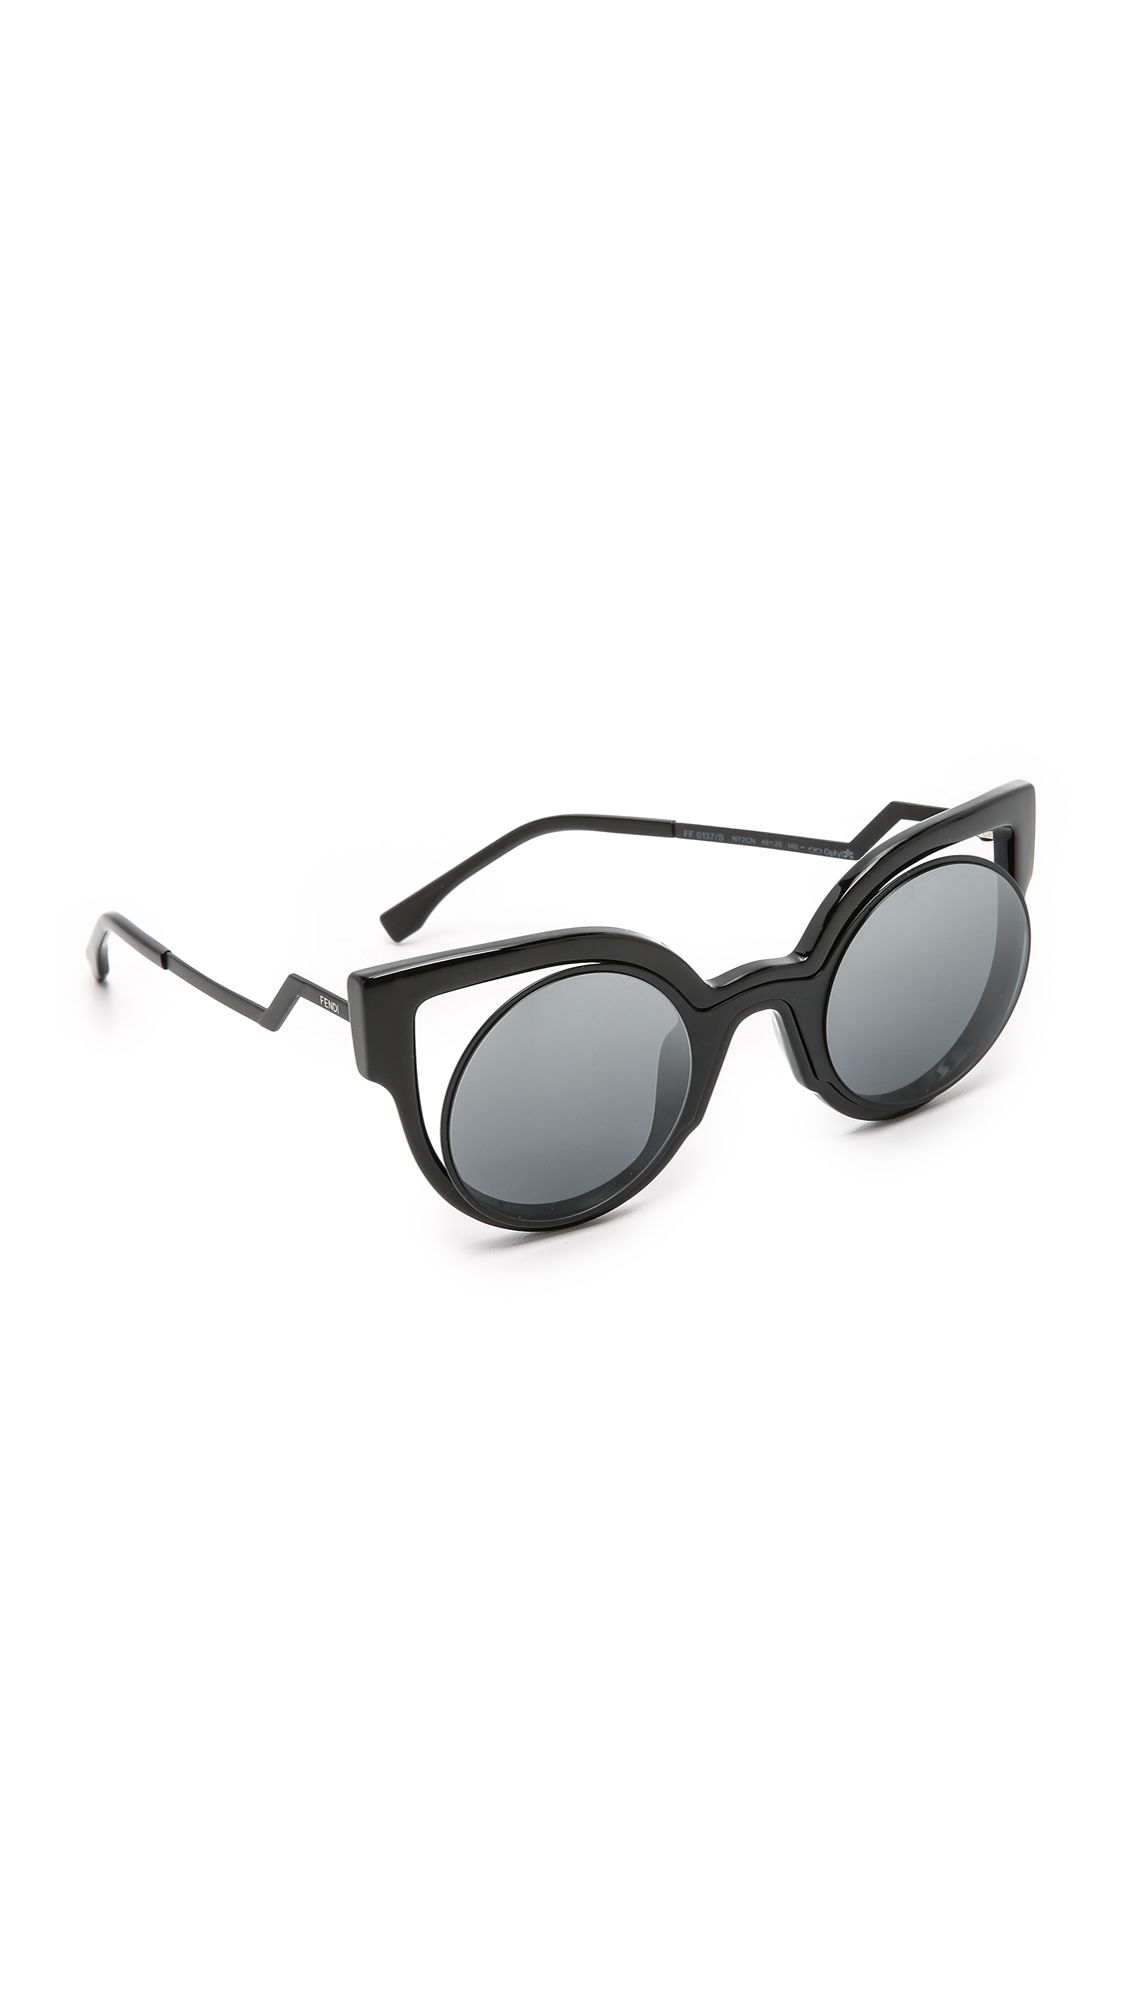 e38ac3571b2 Fendi Round Cutout Sunglasses - Matte Shiny Black Dark Grey ...